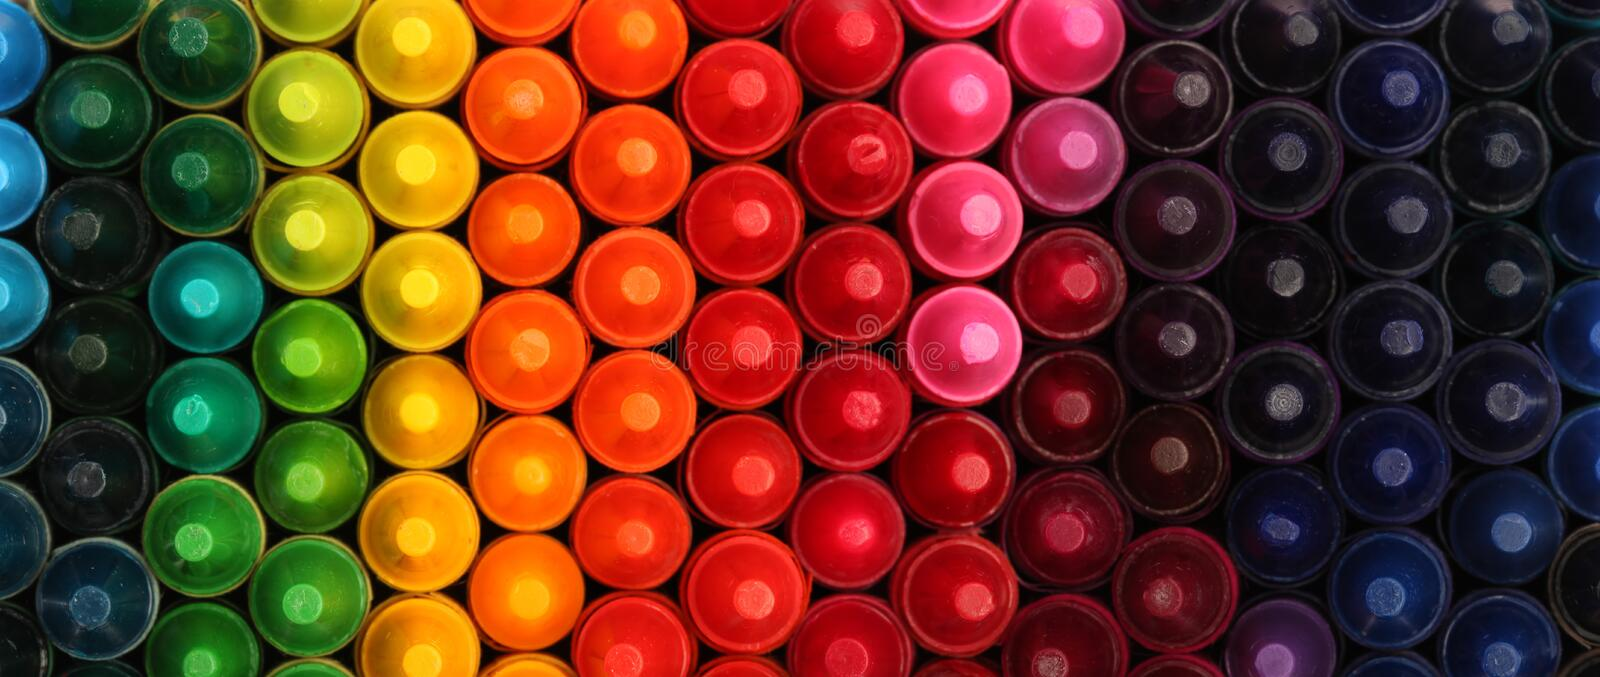 Box of crayons in a rainbow of colors. Background royalty free stock photo